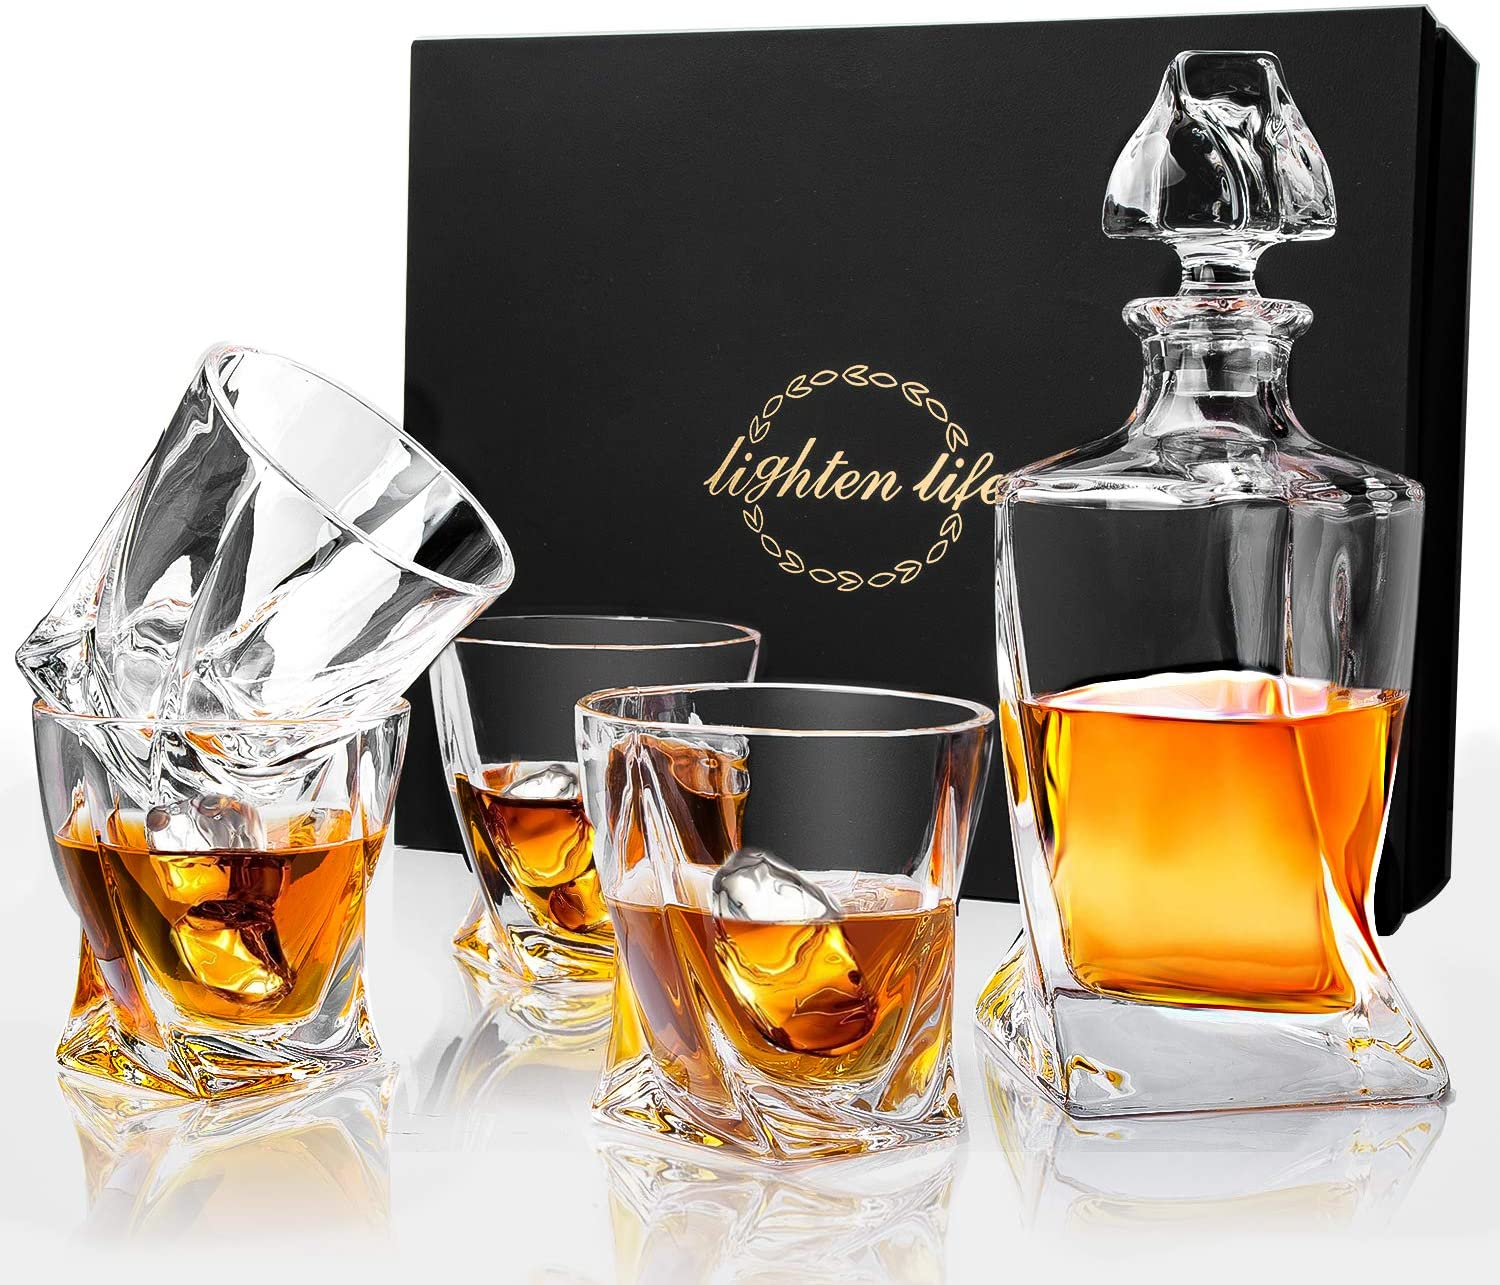 Lighten Life Whiskey Decanter Sets Popular shop is the lowest price challenge Set Quantity limited with Gla Crystal